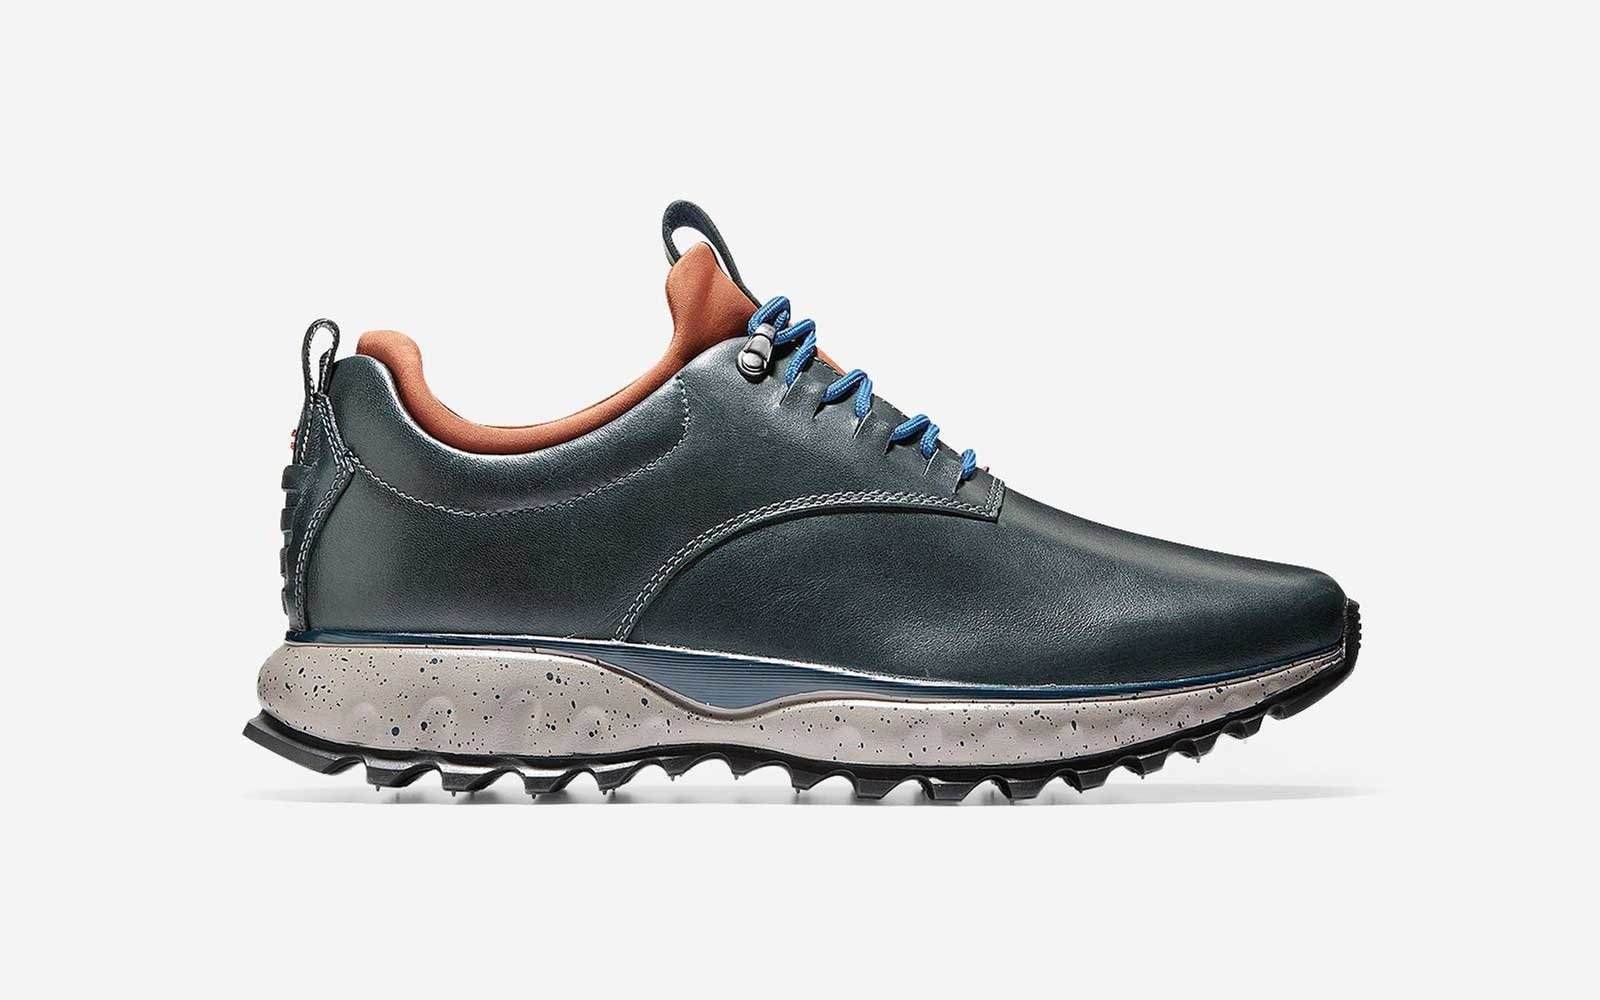 44e8ad32e Cole Haan Men s Zerogrand All-terrain Waterproof Sneaker